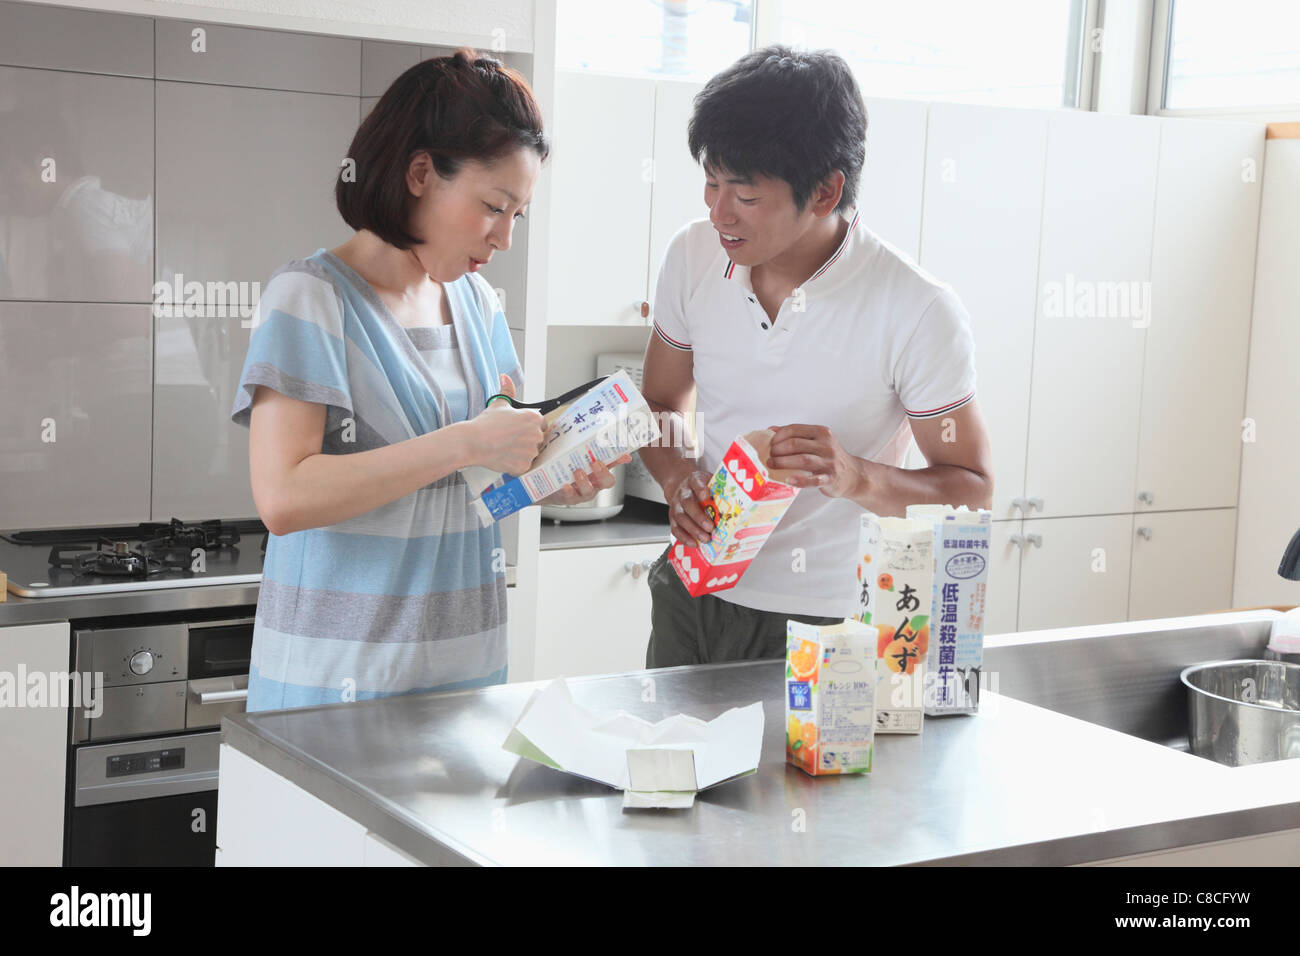 Mid adult couple opening milk carton for recycle - Stock Image